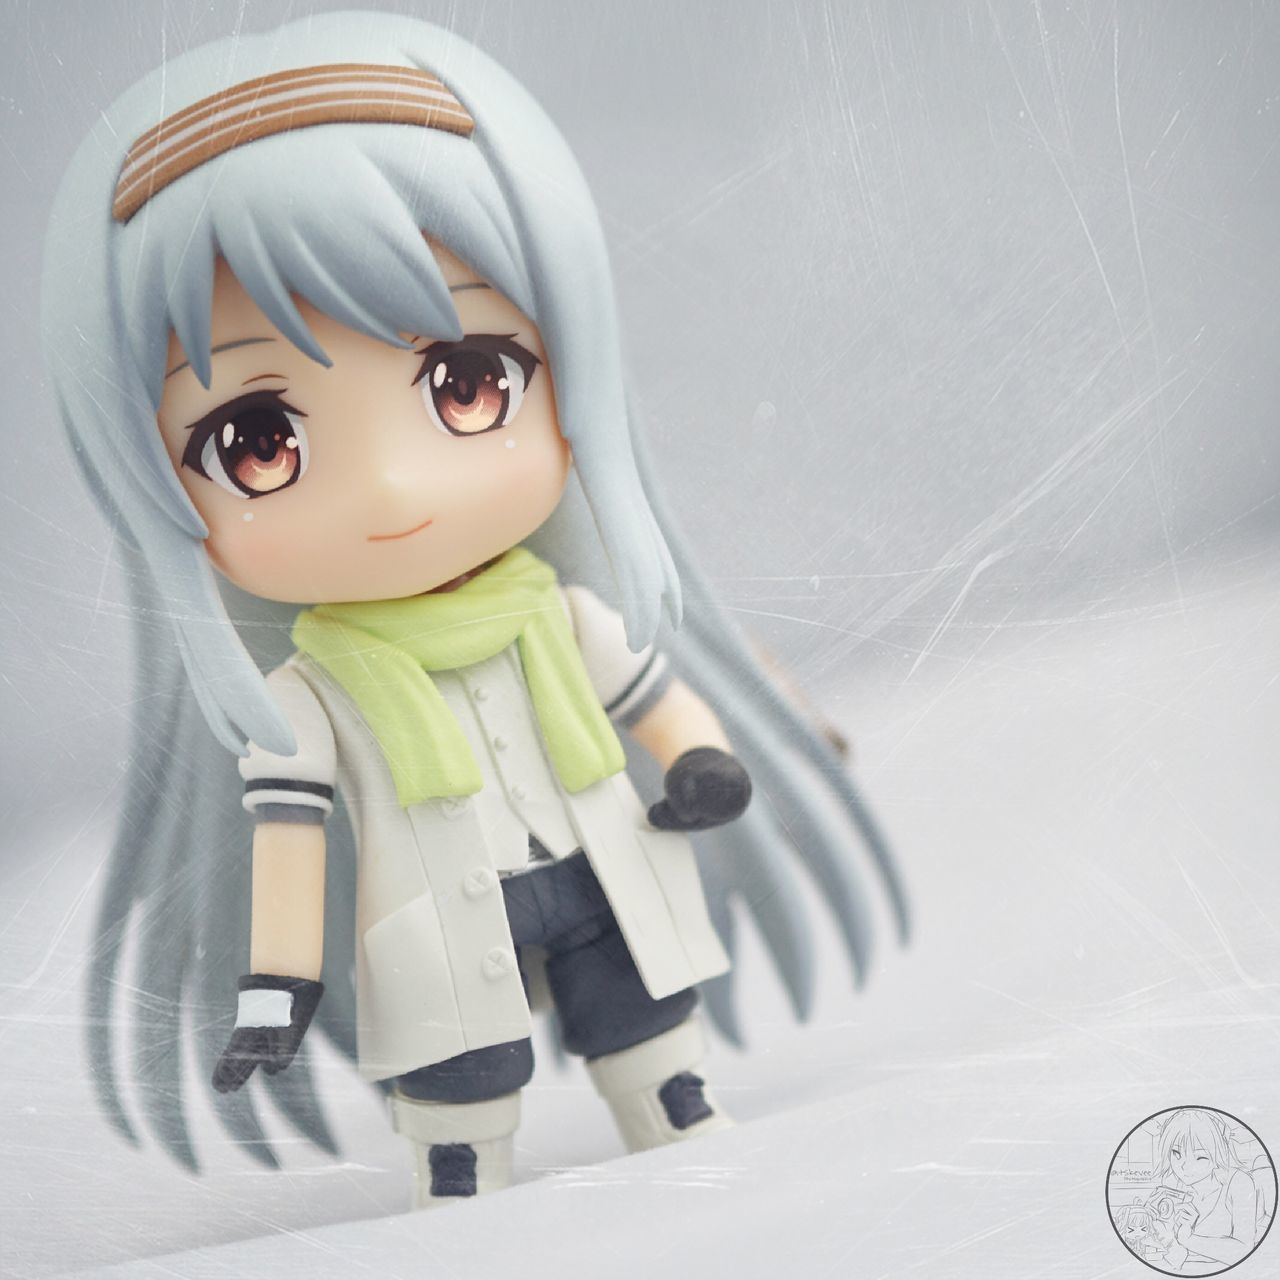 Shoukaku enjoying the weather Human Representation Childhood High Angle View Female Likeness No People Indoors  Figurine  Close-up White Background Day Anime Kantaicollection Kancolle Shoukaku Nendoroid